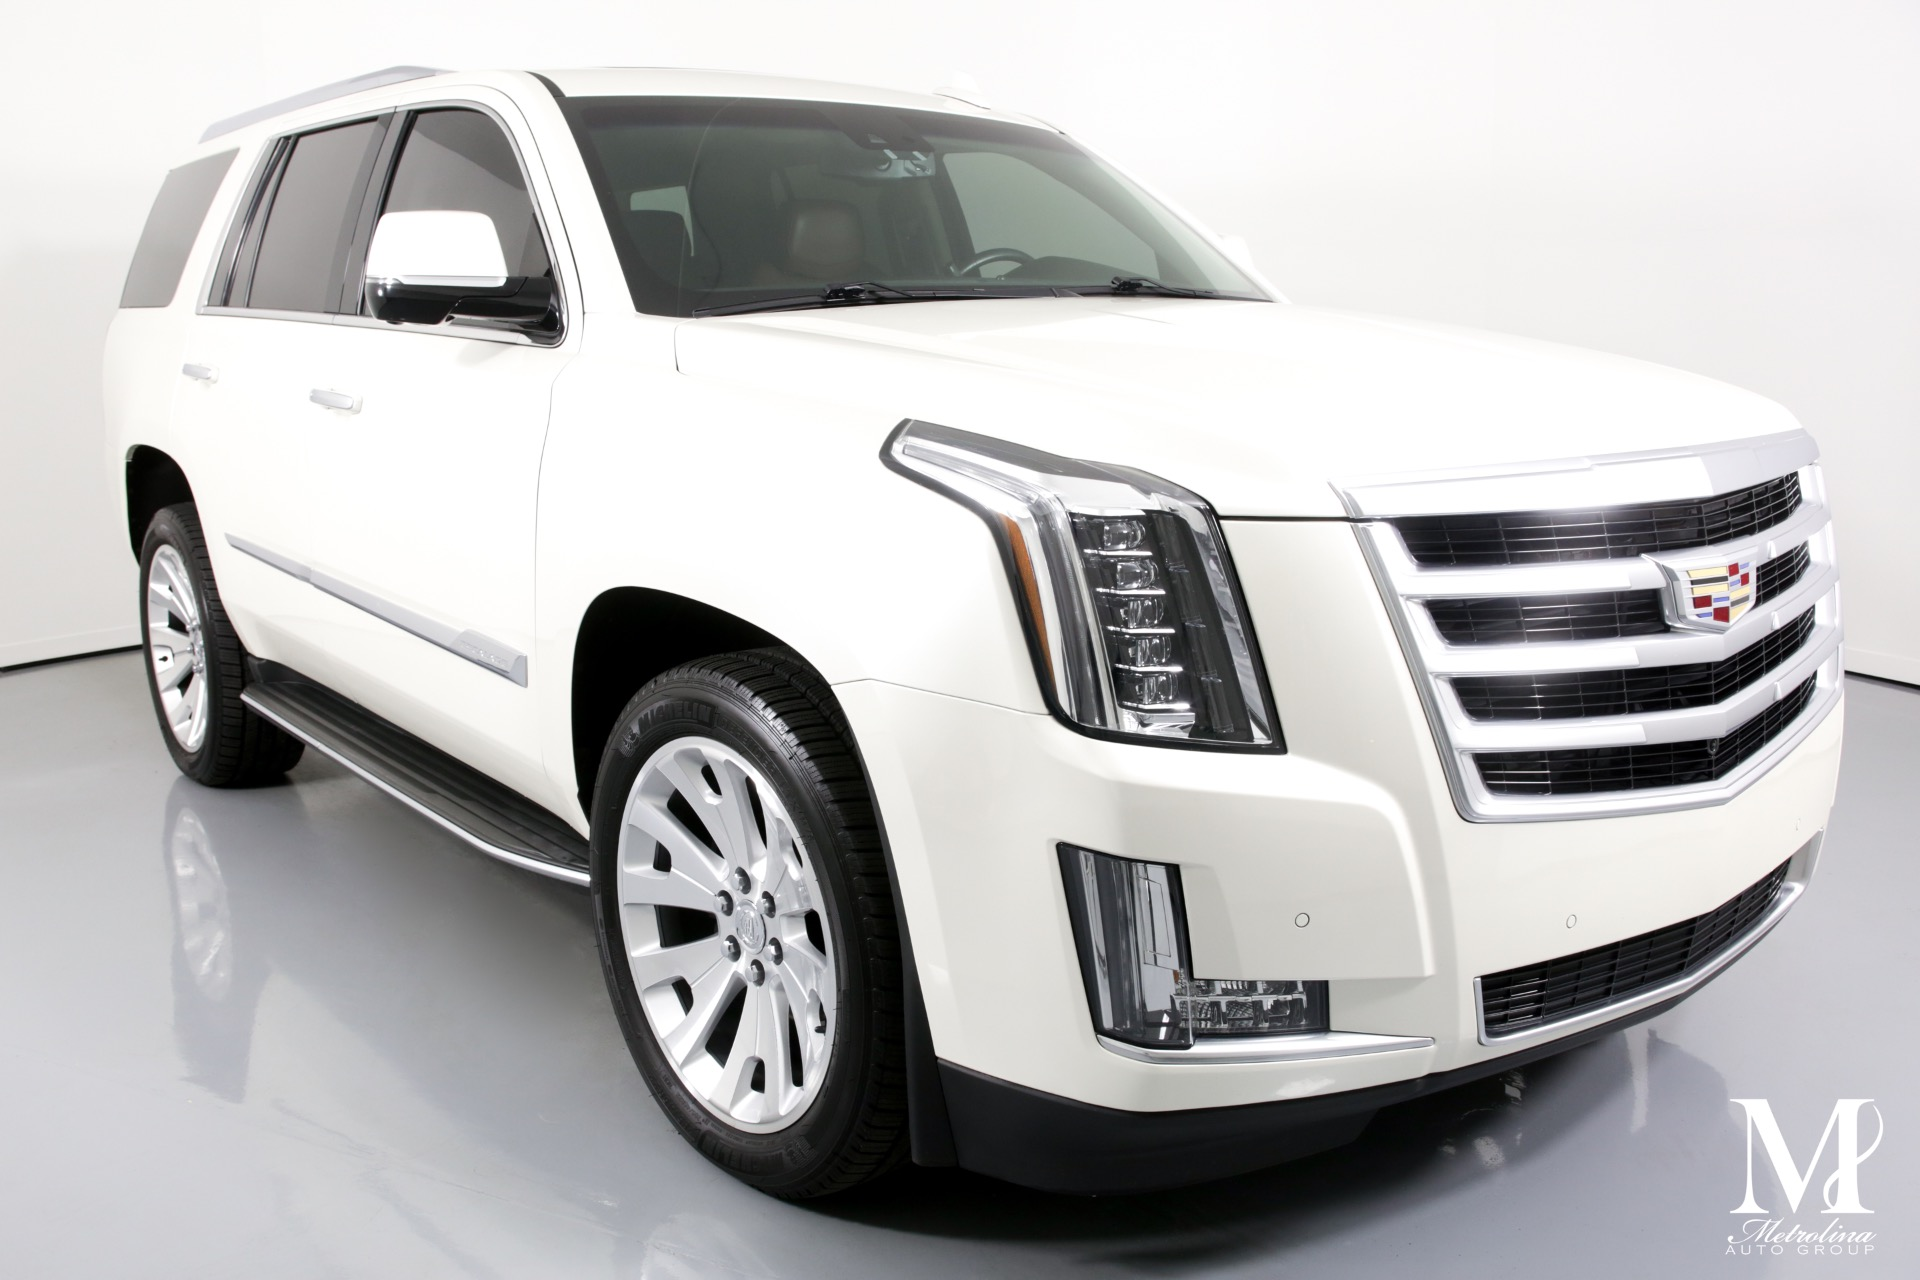 Used 2015 Cadillac Escalade Luxury for sale $49,996 at Metrolina Auto Group in Charlotte NC 28217 - 2